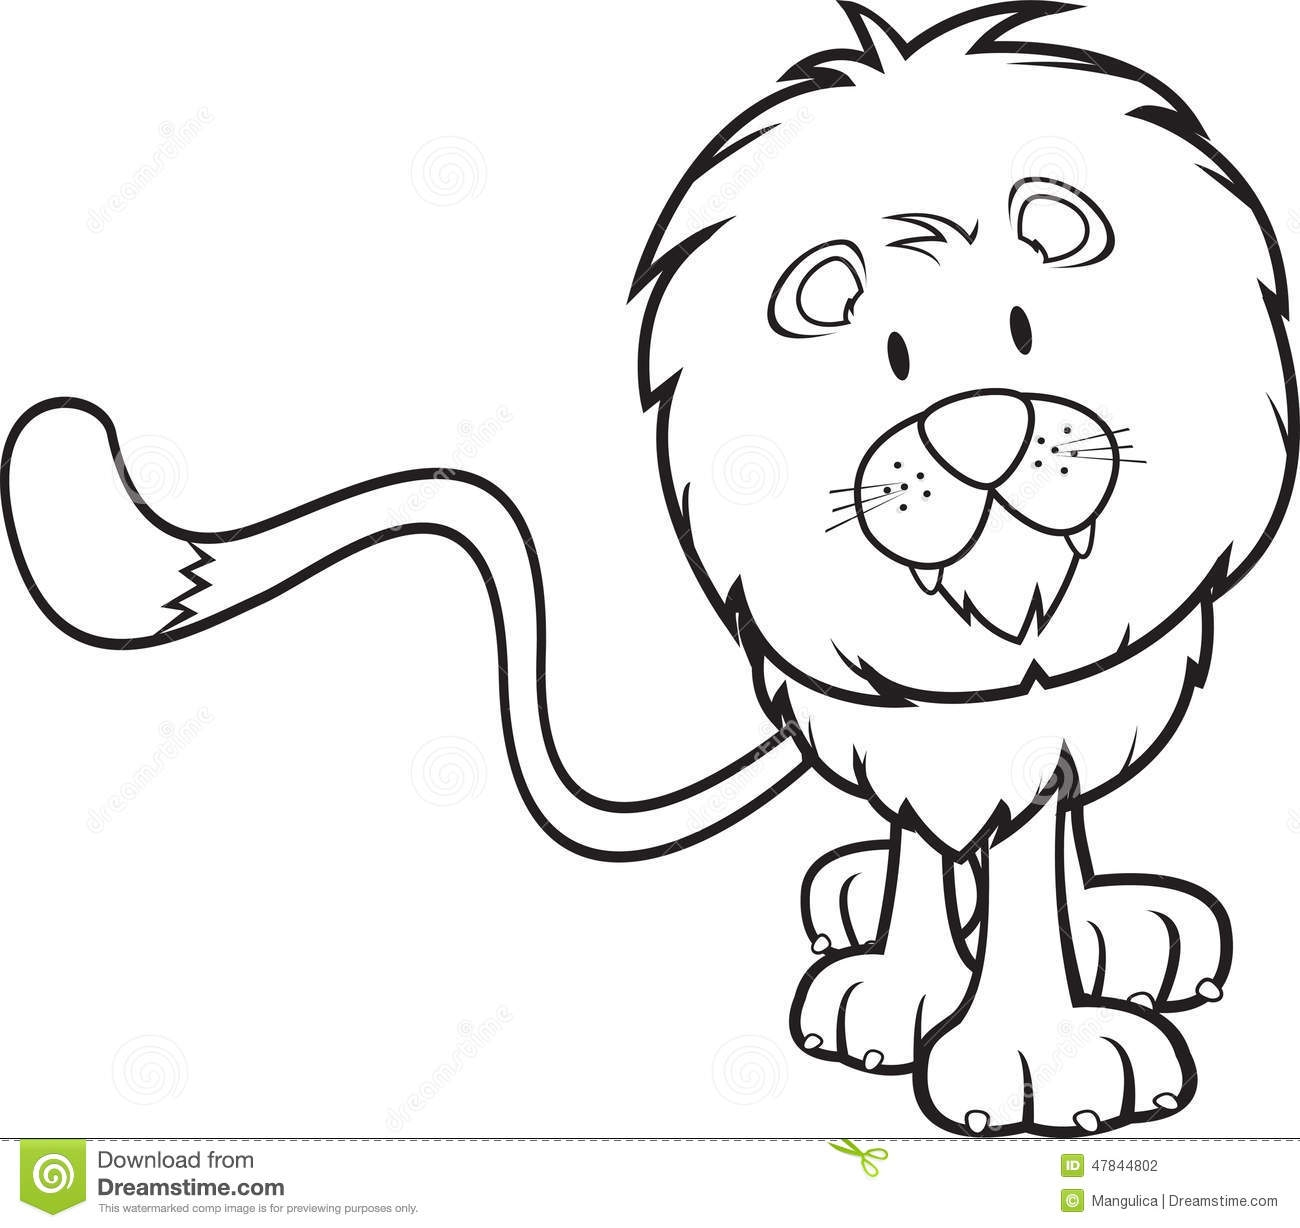 jungle book coloring pages - stock illustration cute lion coloring book vector illustration image